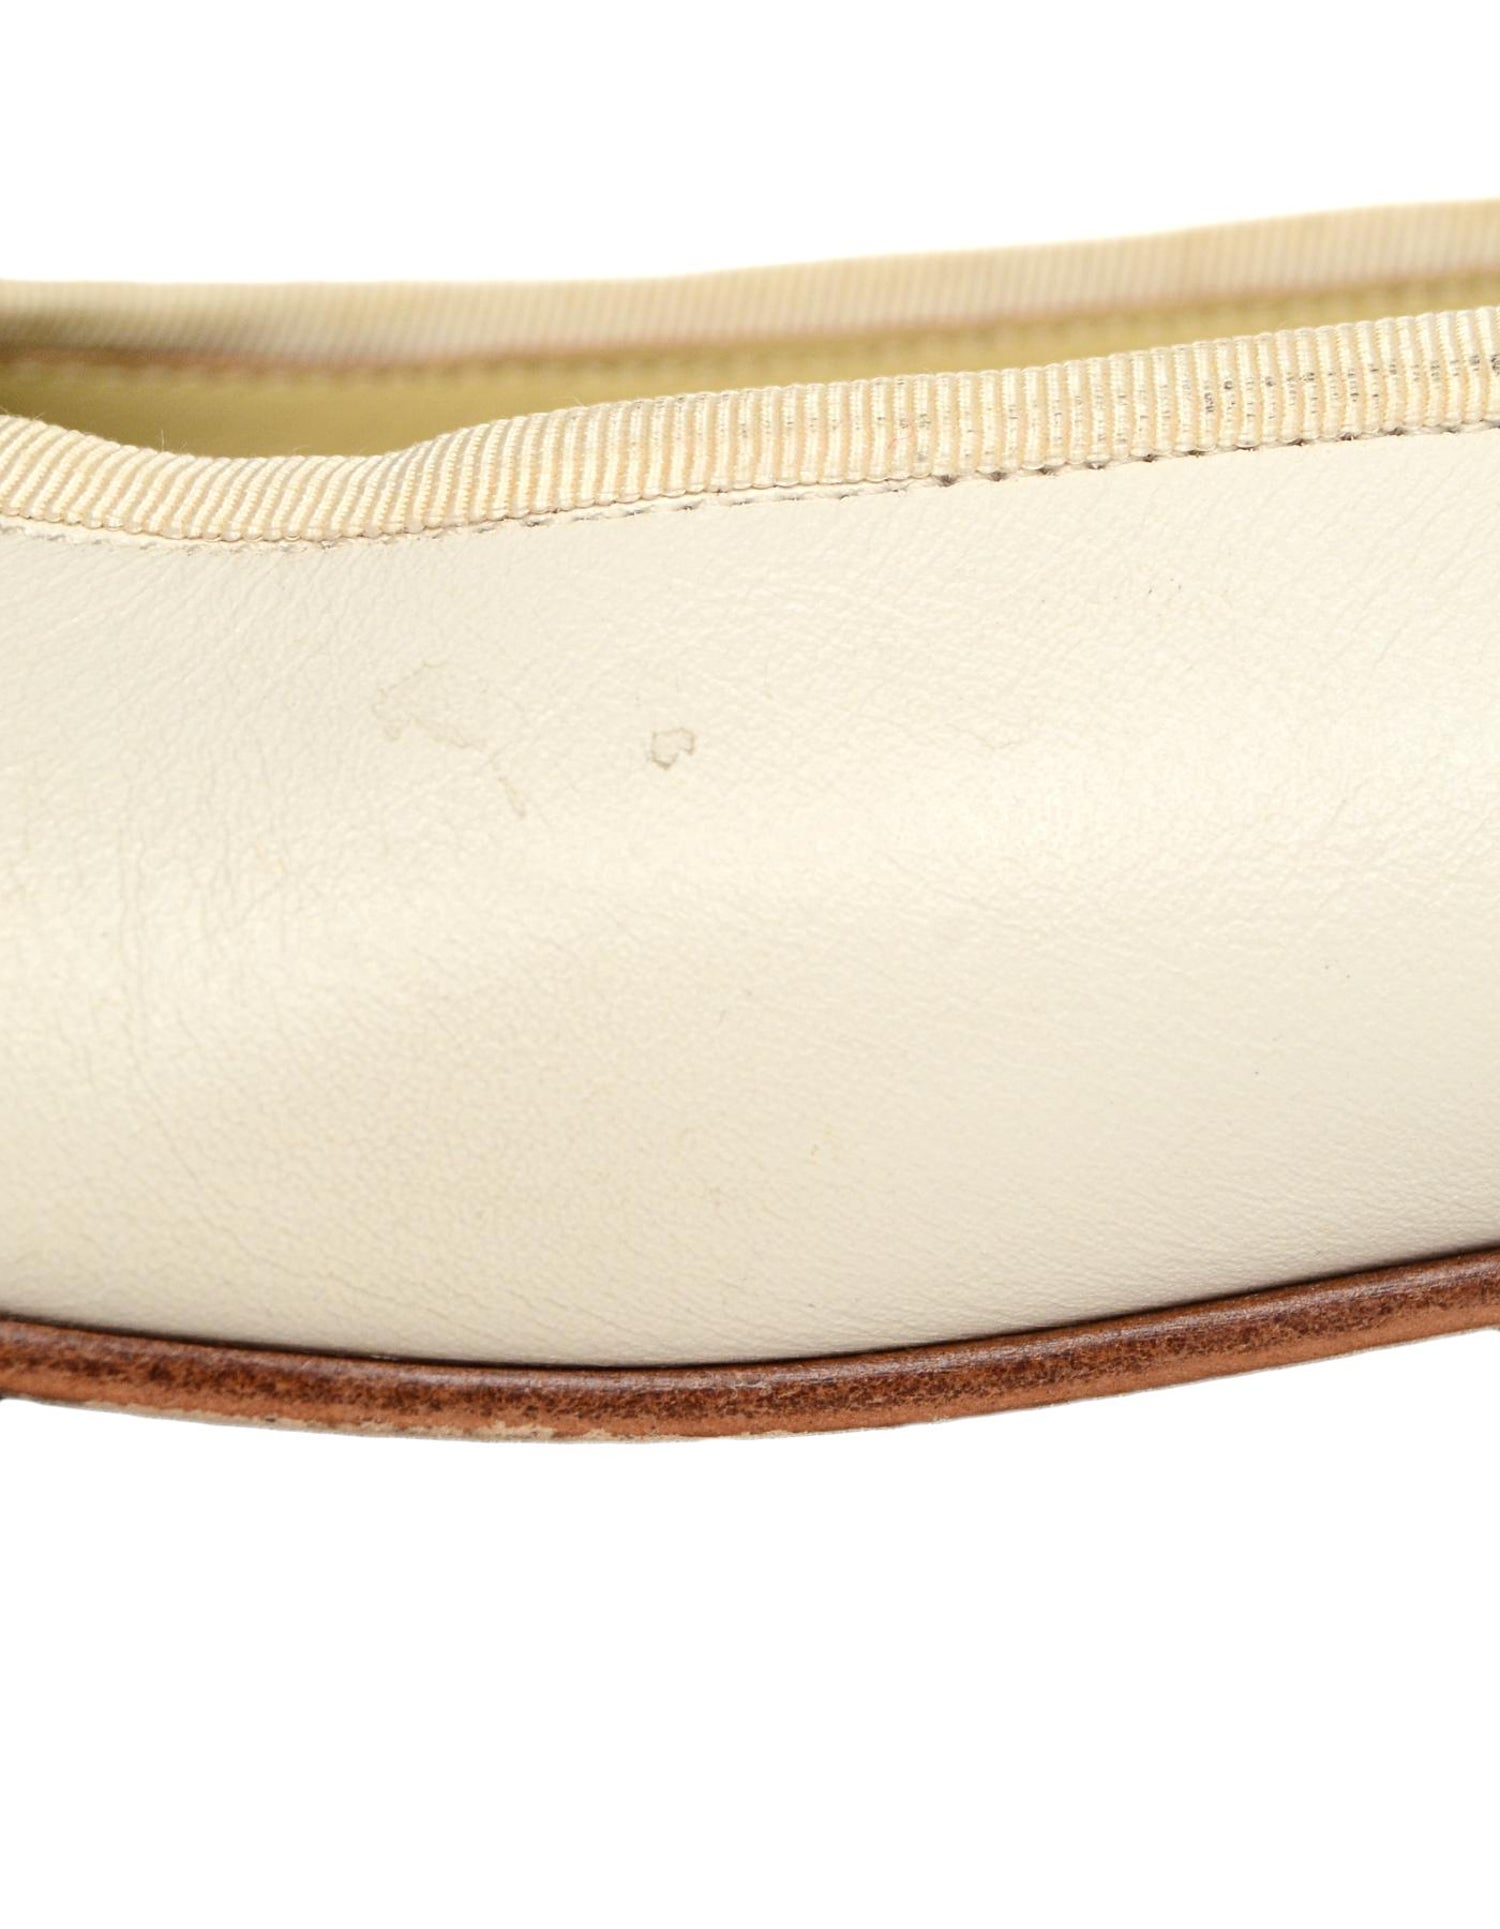 c8d801ed4 Chanel Cream Leather CC Ballet Flats Sz 37 at 1stdibs